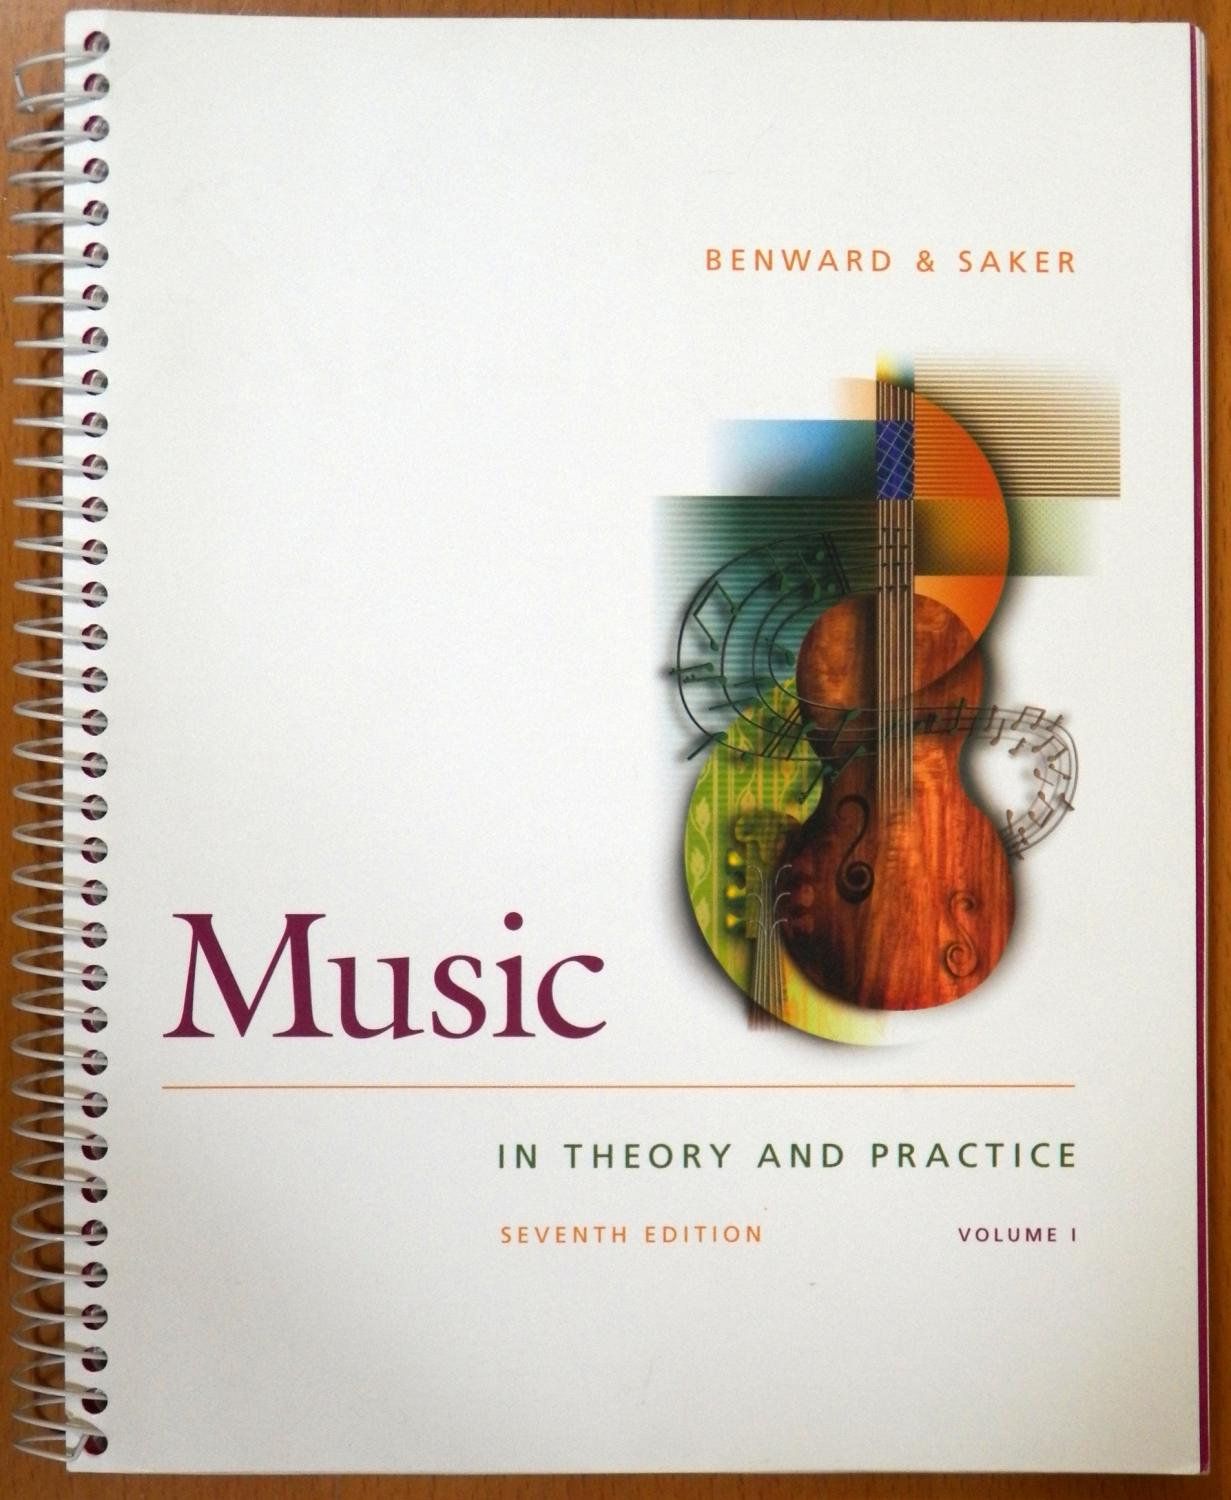 Workbooks music in theory and practice workbook : Music in Theory and Practice, Volume 1 (Seventh Edition) with ...